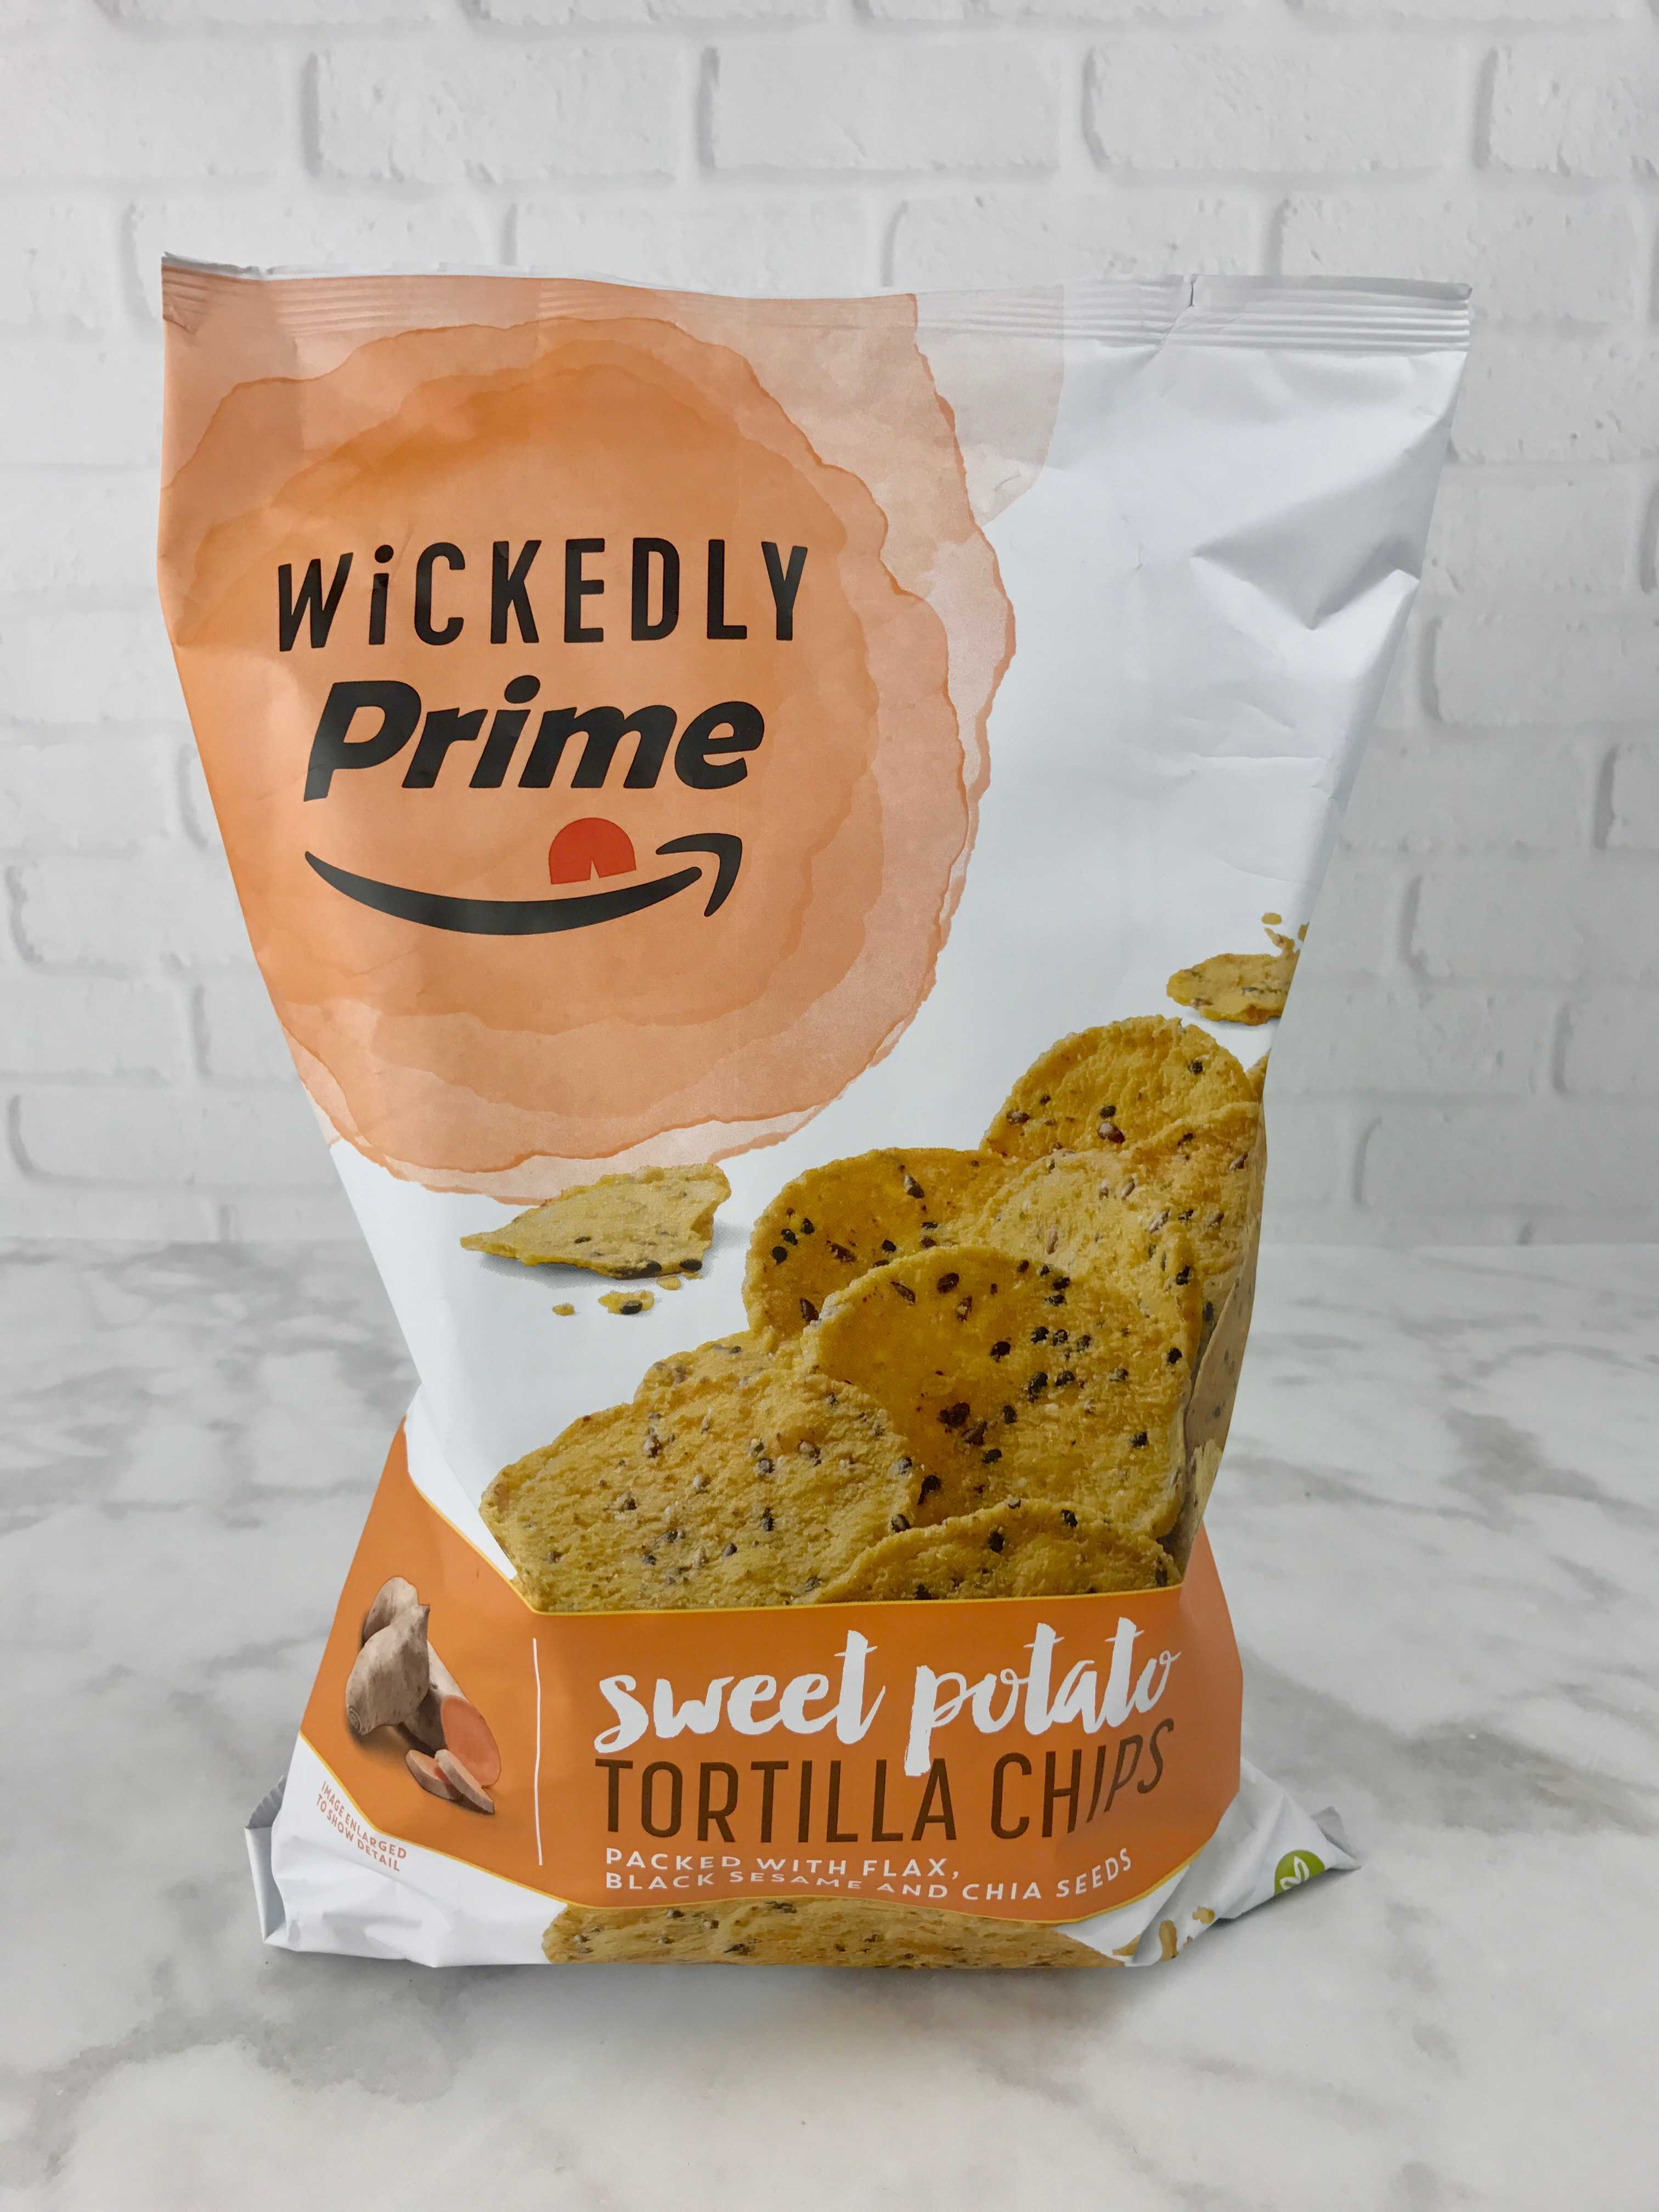 wickedly prime review u2013 fancy tortilla chips u0026 chicago mix hello